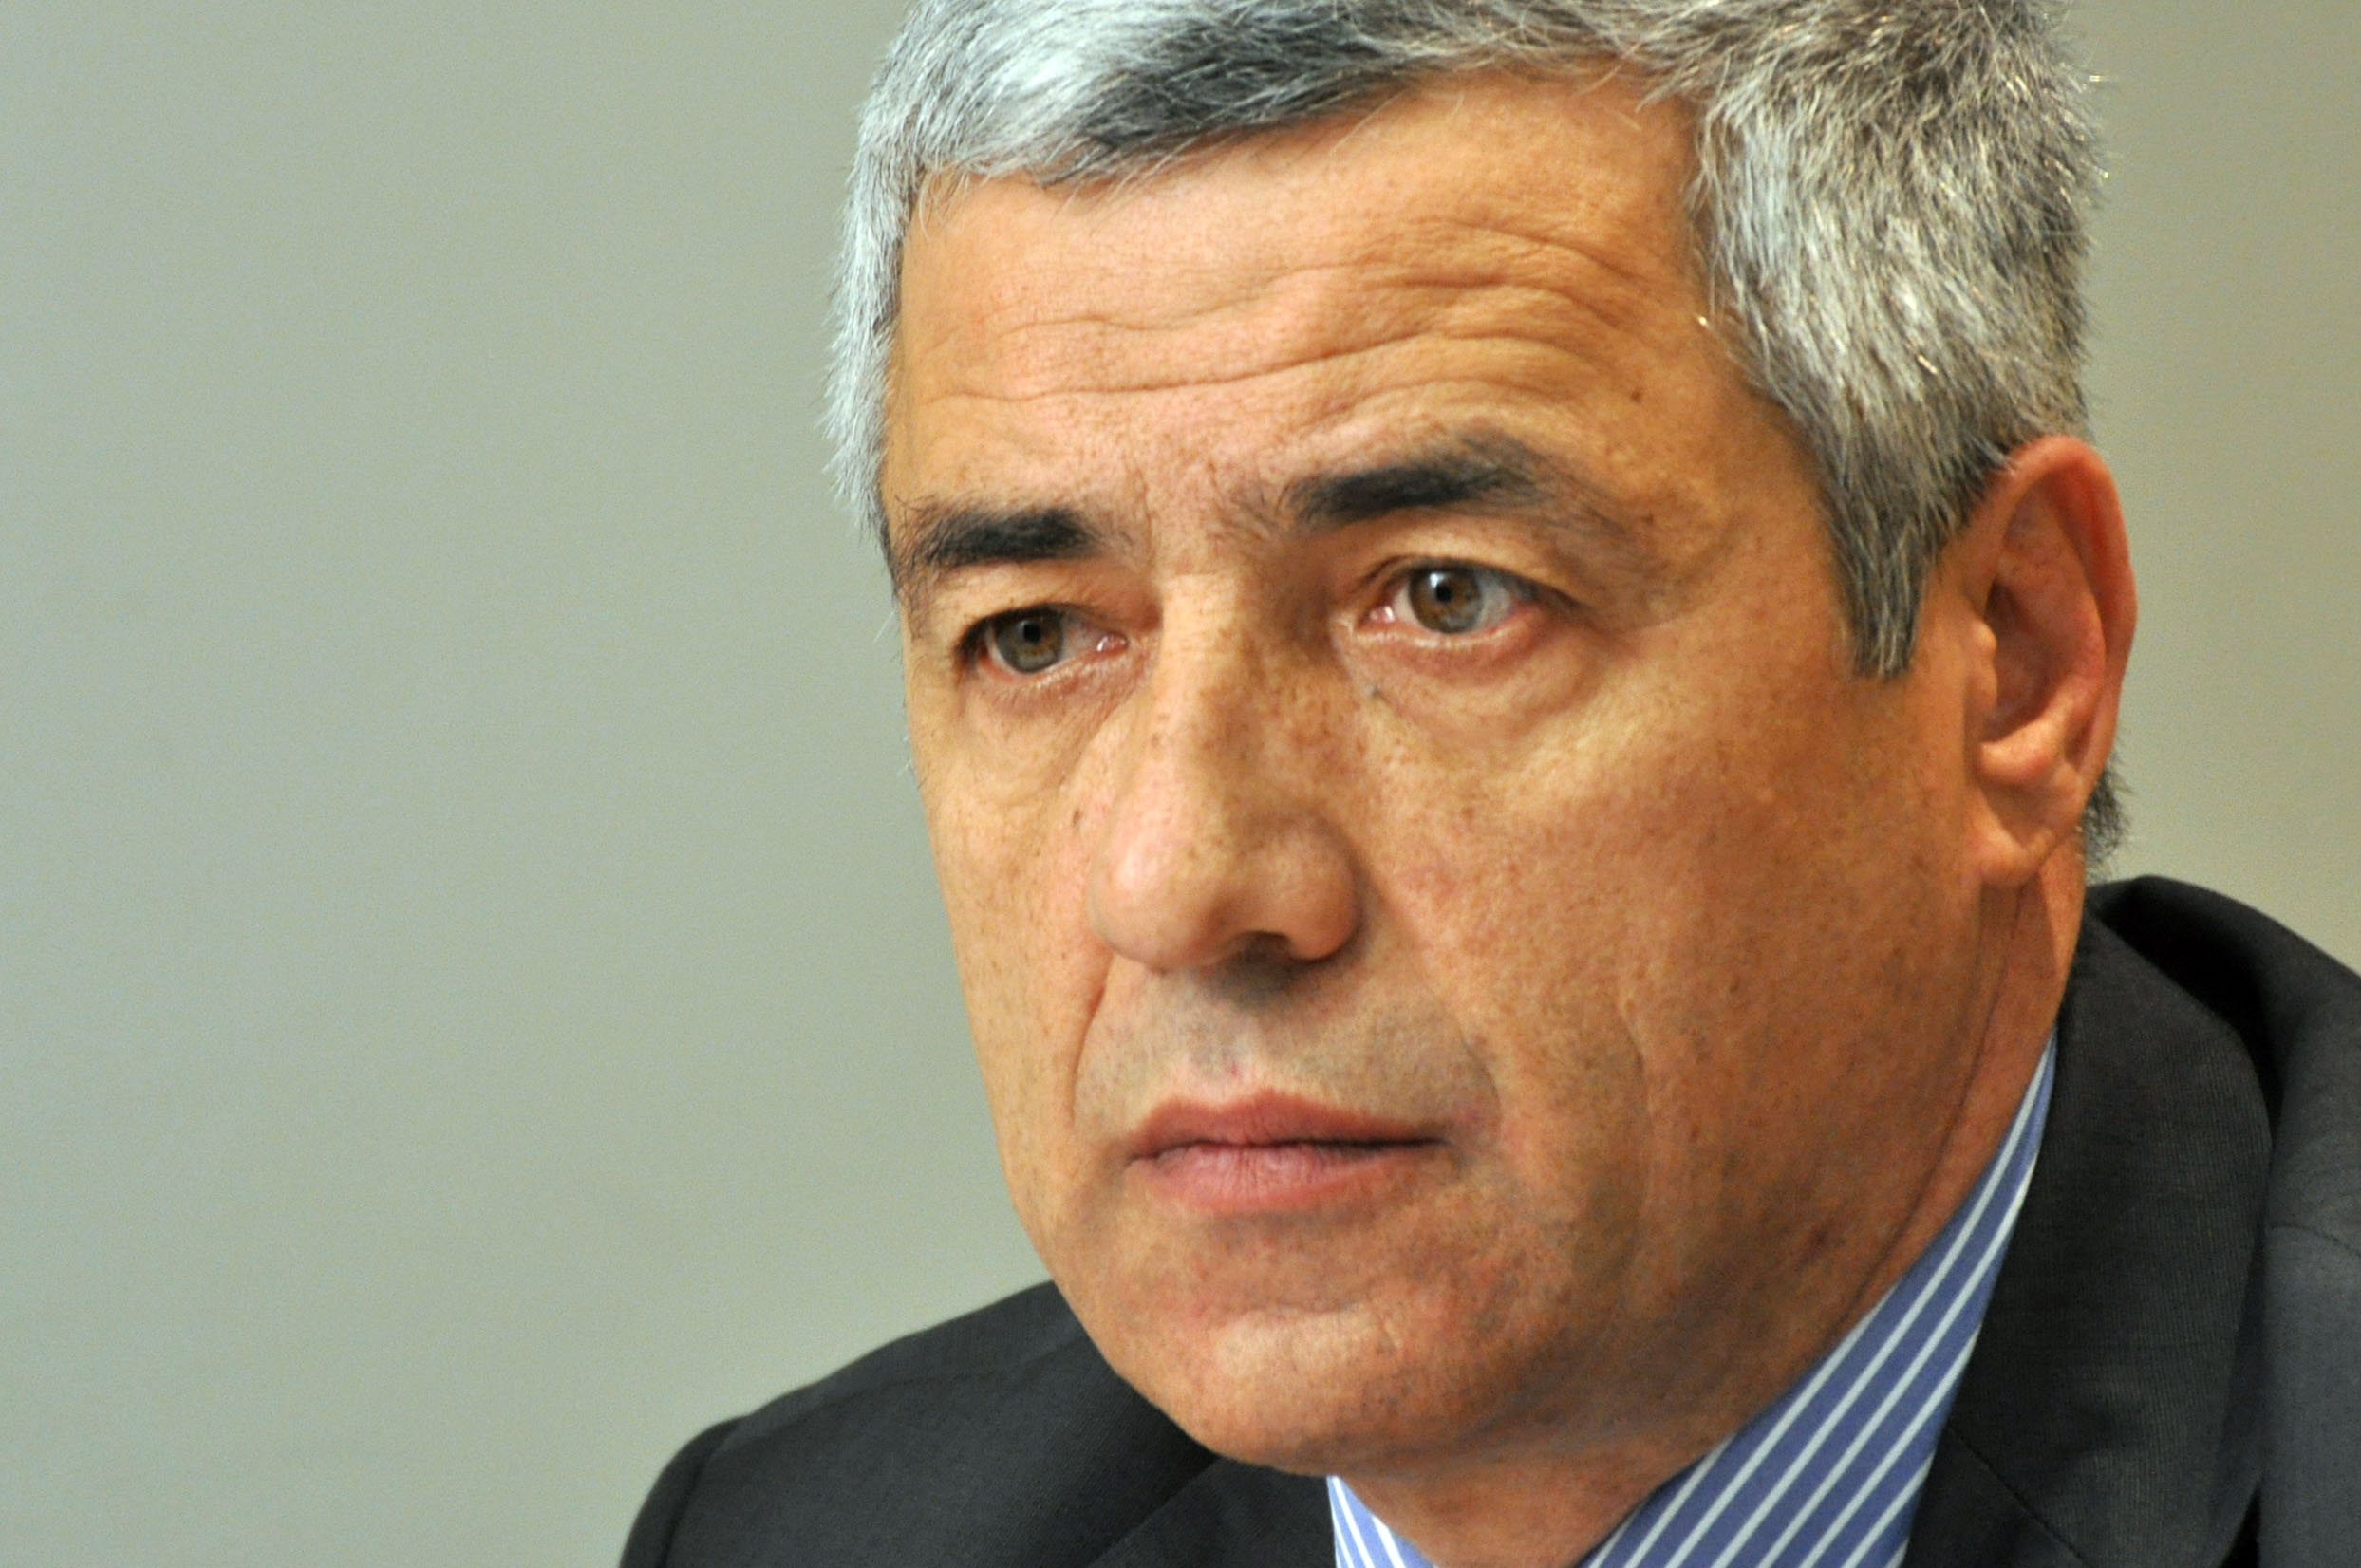 Oliver Ivanović was assassinated outside his party offices in Mitrovica one year ago today